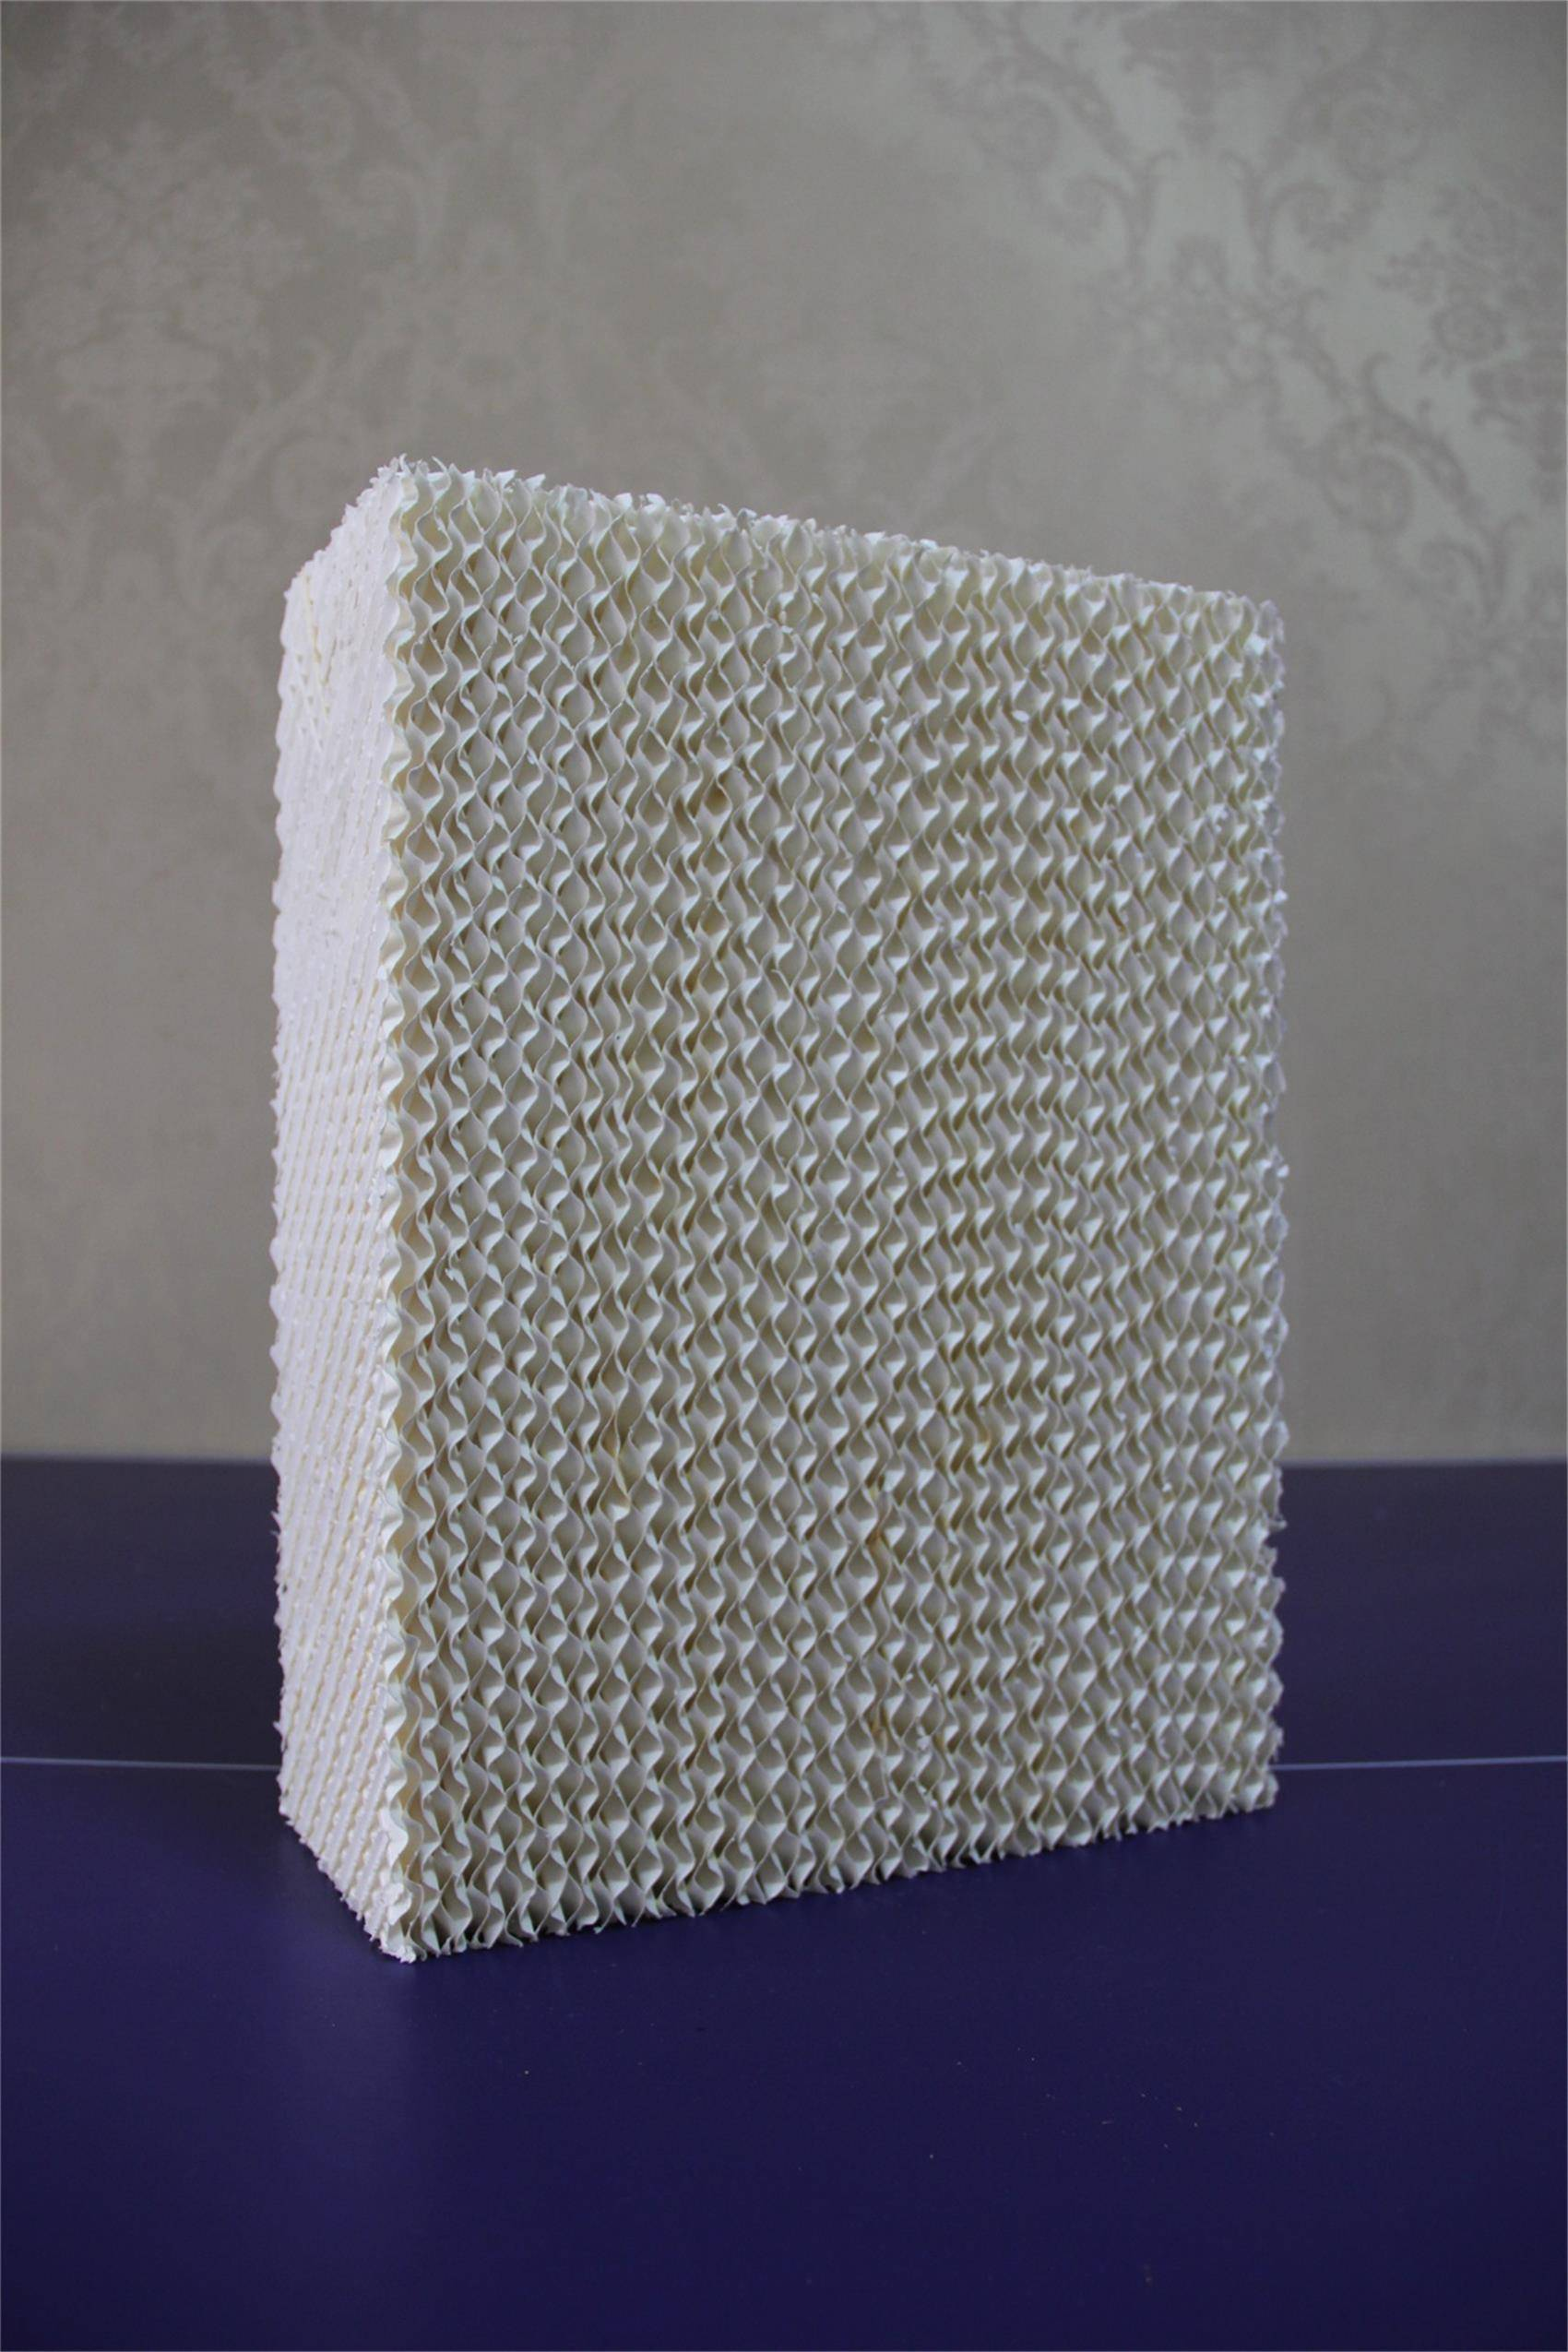 white evaporative cooling pad